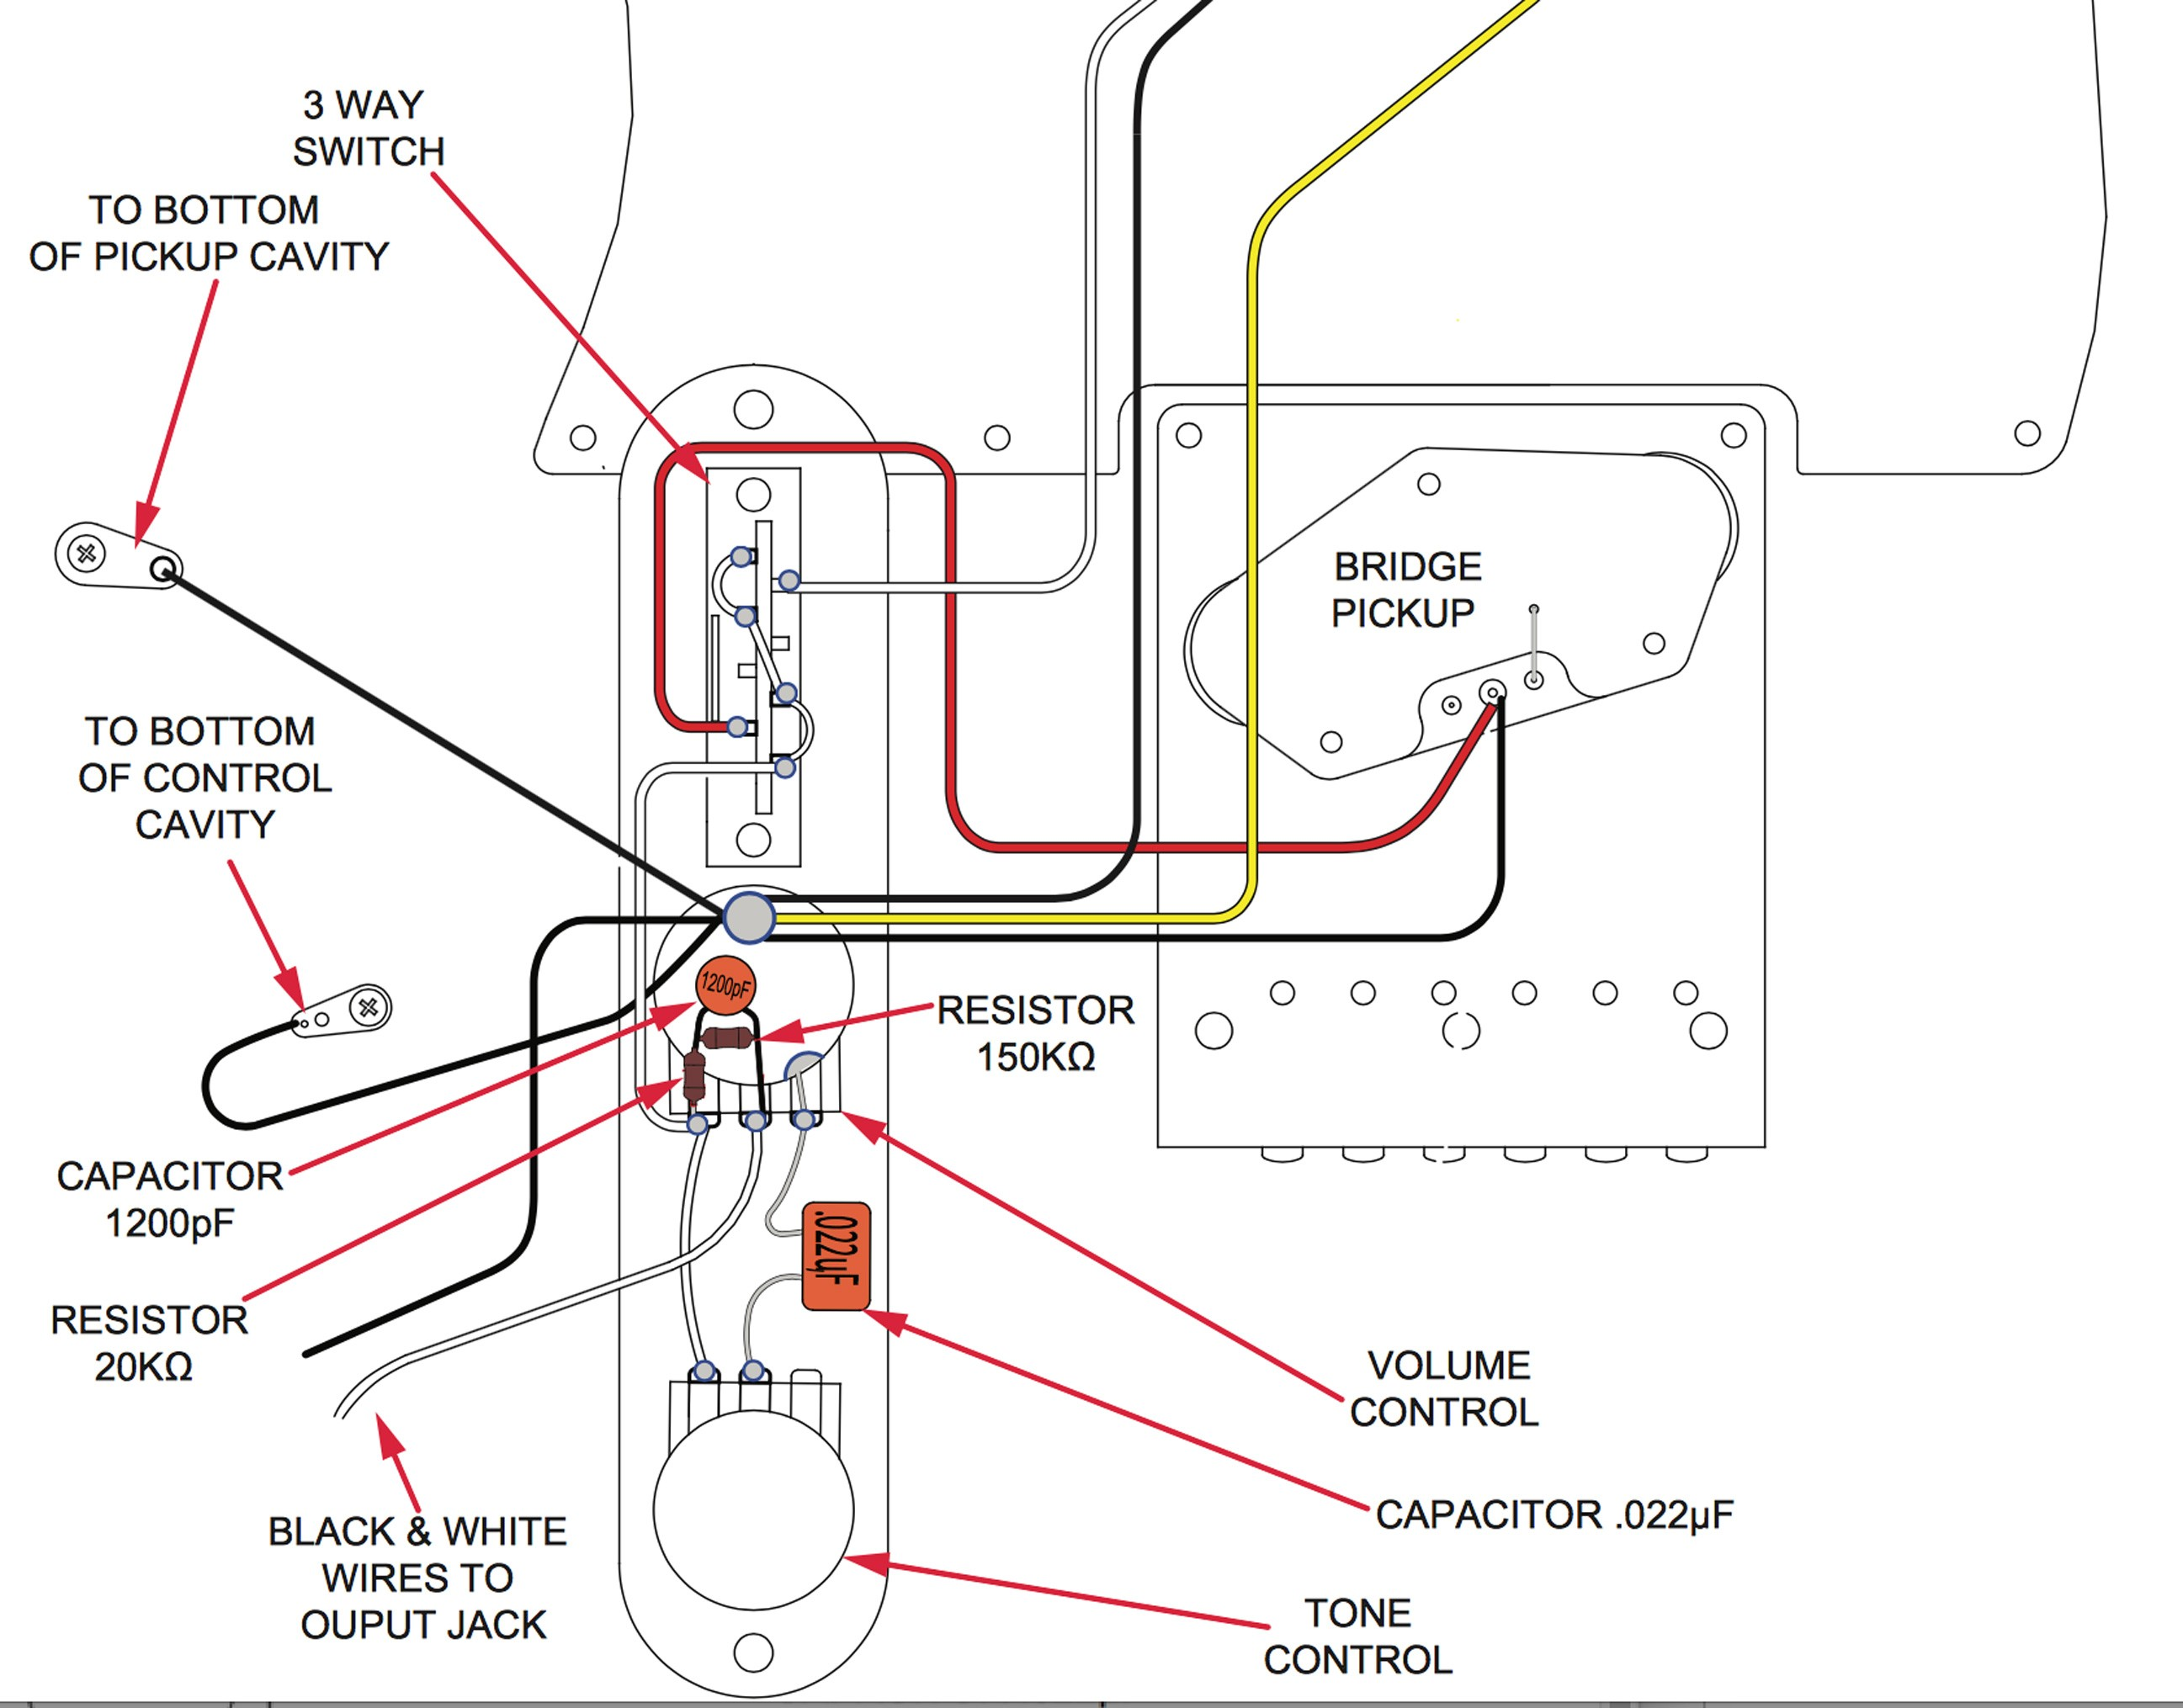 Fender S1 Switch Diagram How A Treble Bleed Circuit Can Affect Your tone Of Fender S1 Switch Diagram